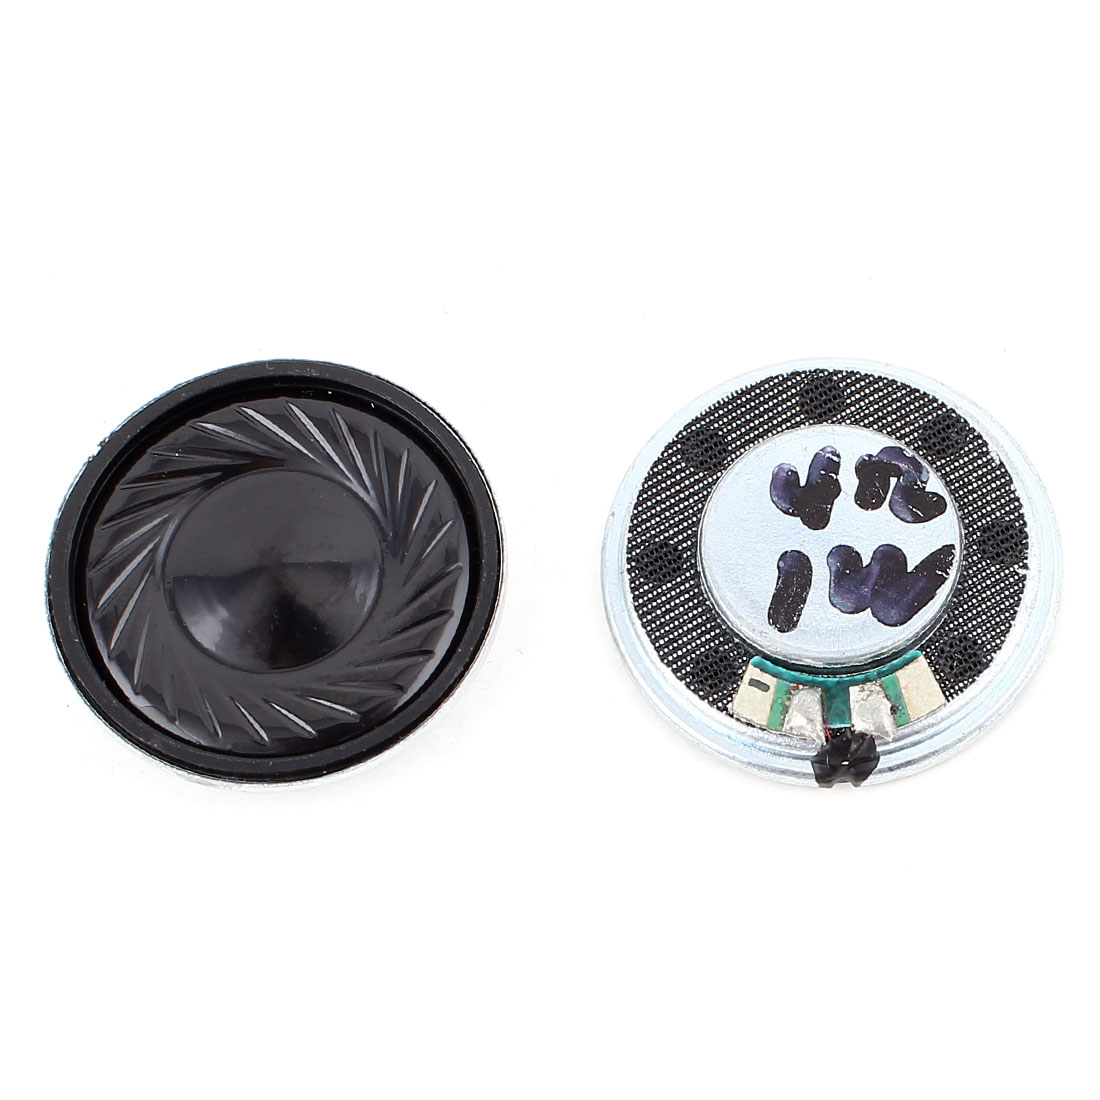 2 Pcs 1W 4 Ohm 28mm Round Inside Magnet Electronic Speaker Loudspeaker